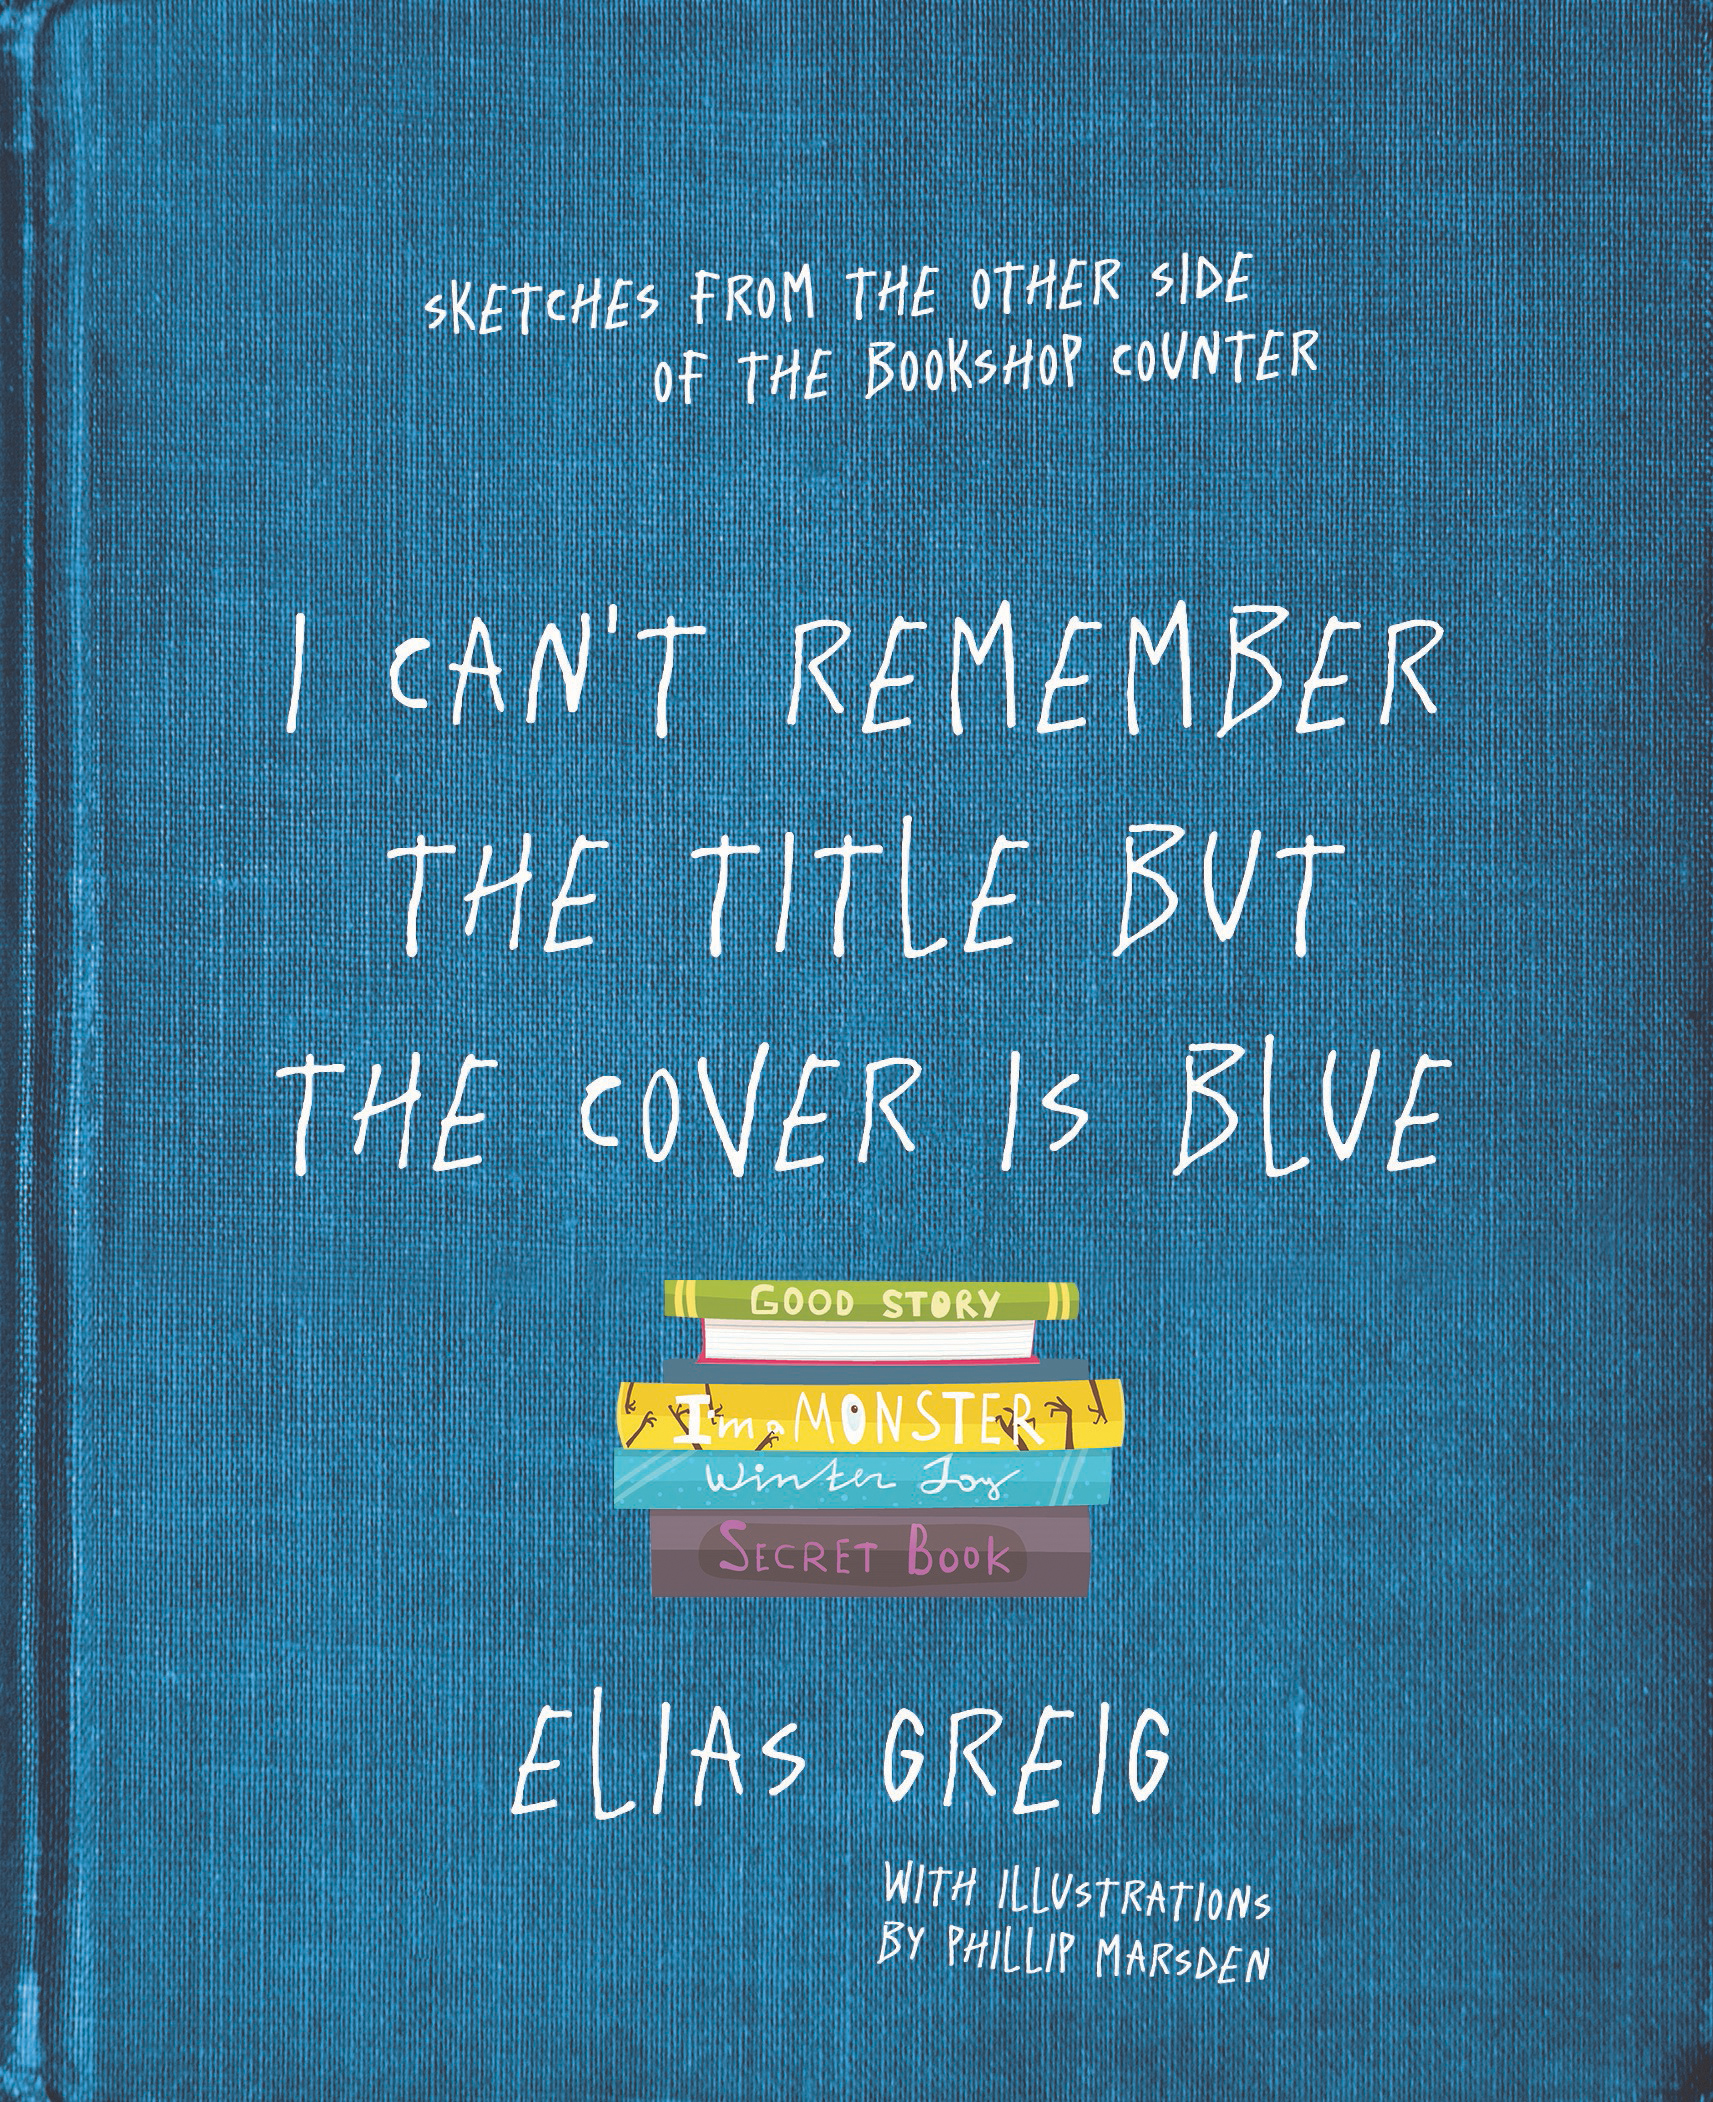 I Can't Remember the Title But the Cover is Blue by Elias Greig, ISBN: 9781760529451